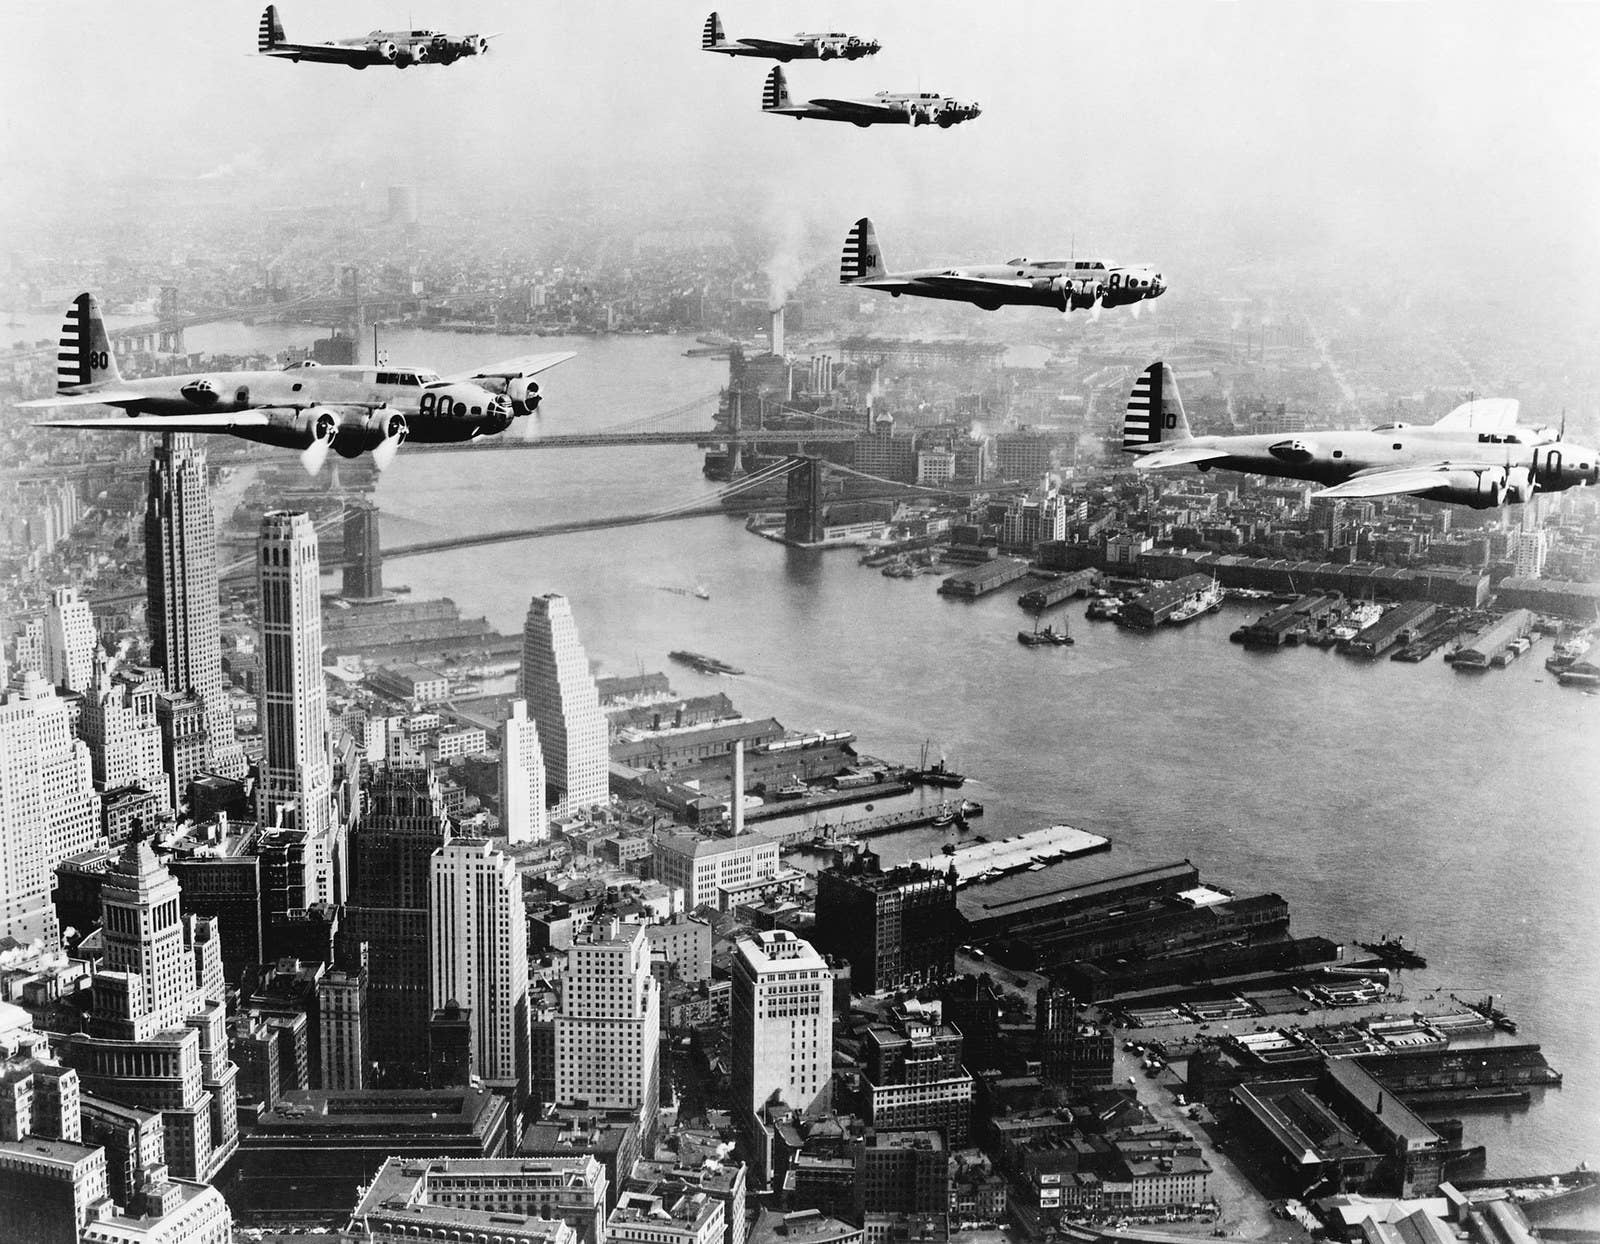 US Army Boeing B-17 airplanes fly in a precise pattern over New York City, 1941.